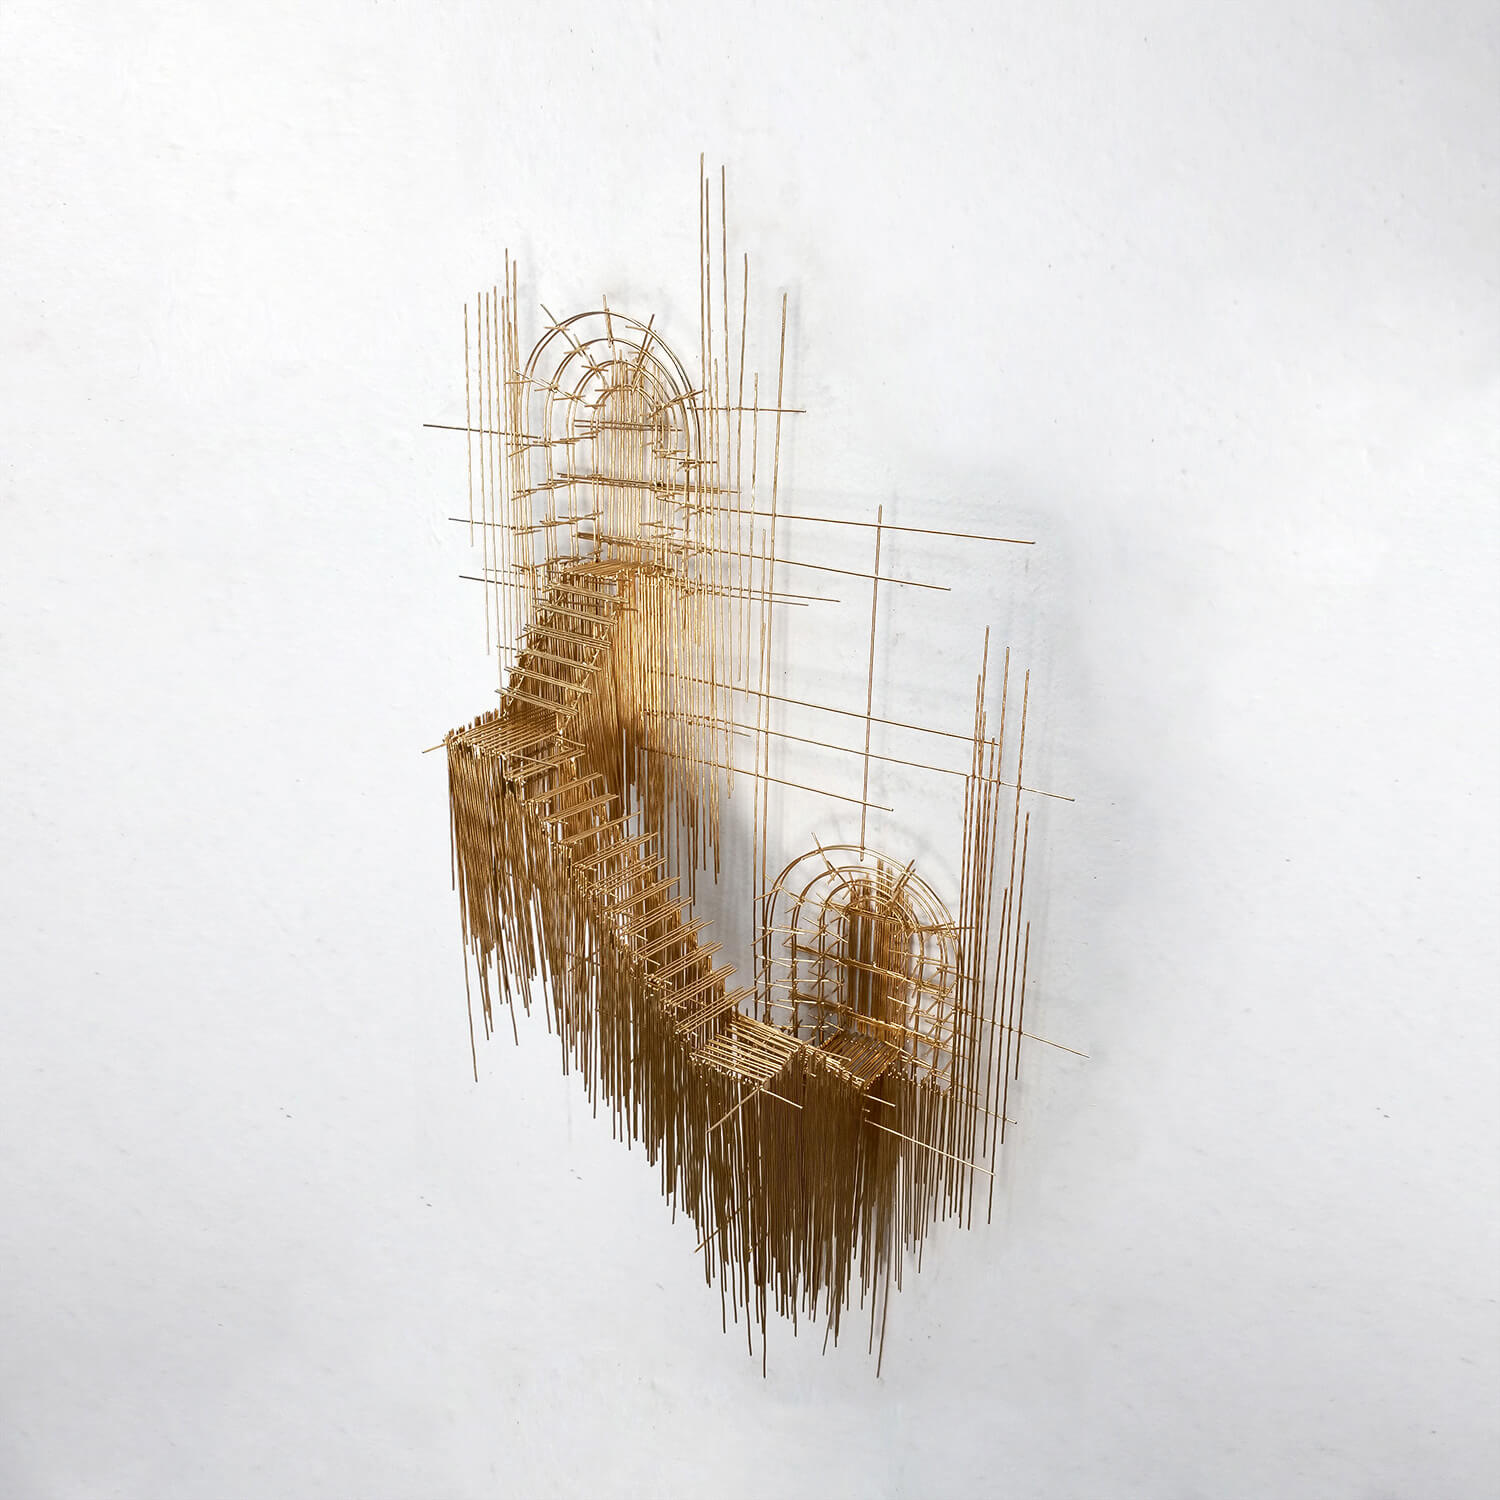 david moreno floating cities 2 (1)